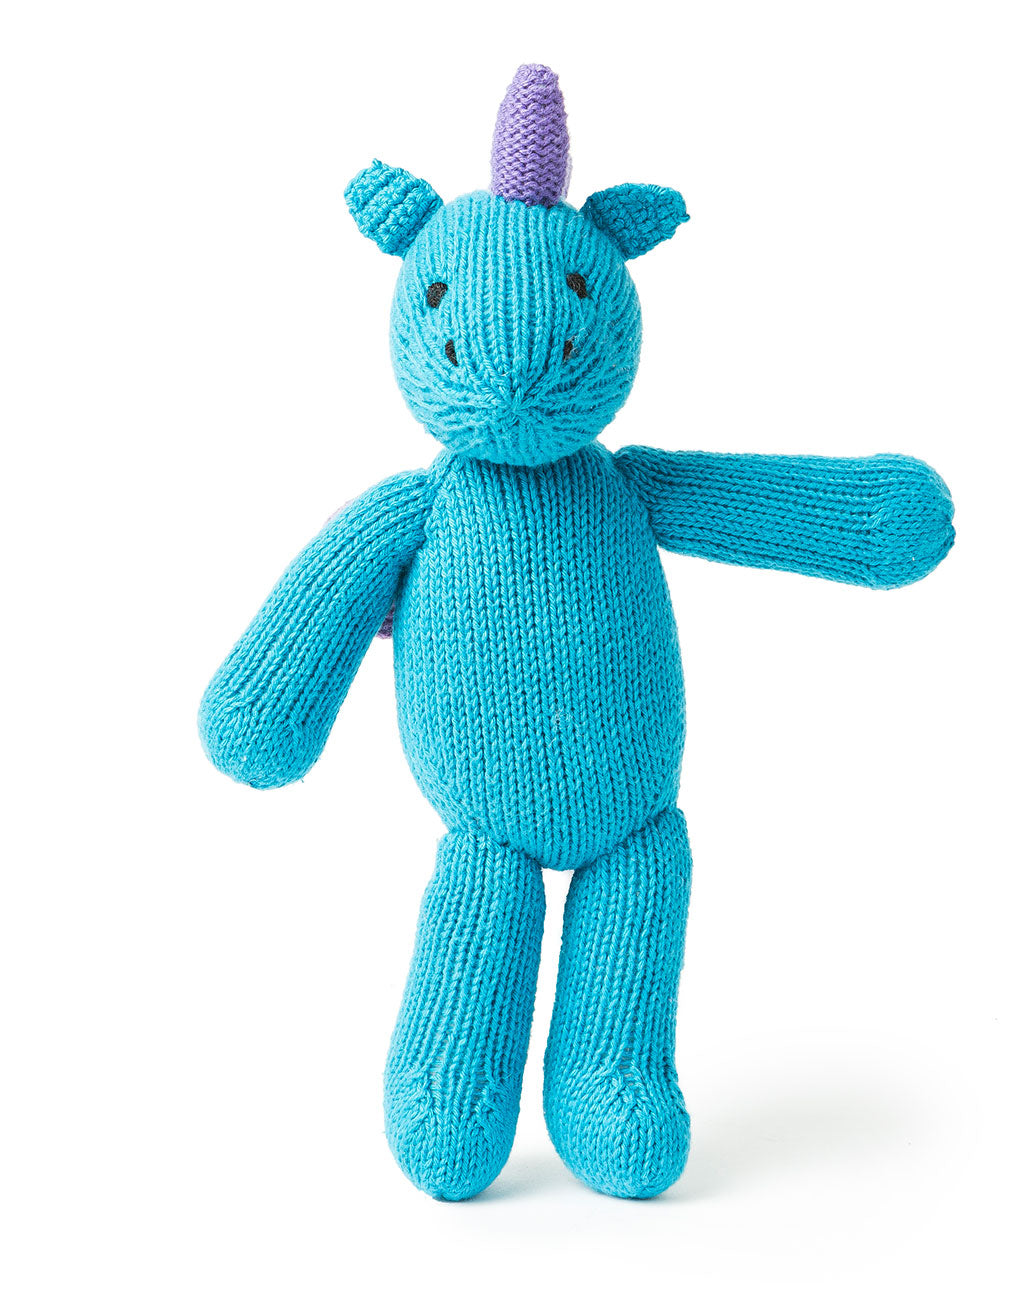 Fair Trade Hand Knit Peruvian Stuffed Animal For Children Blue